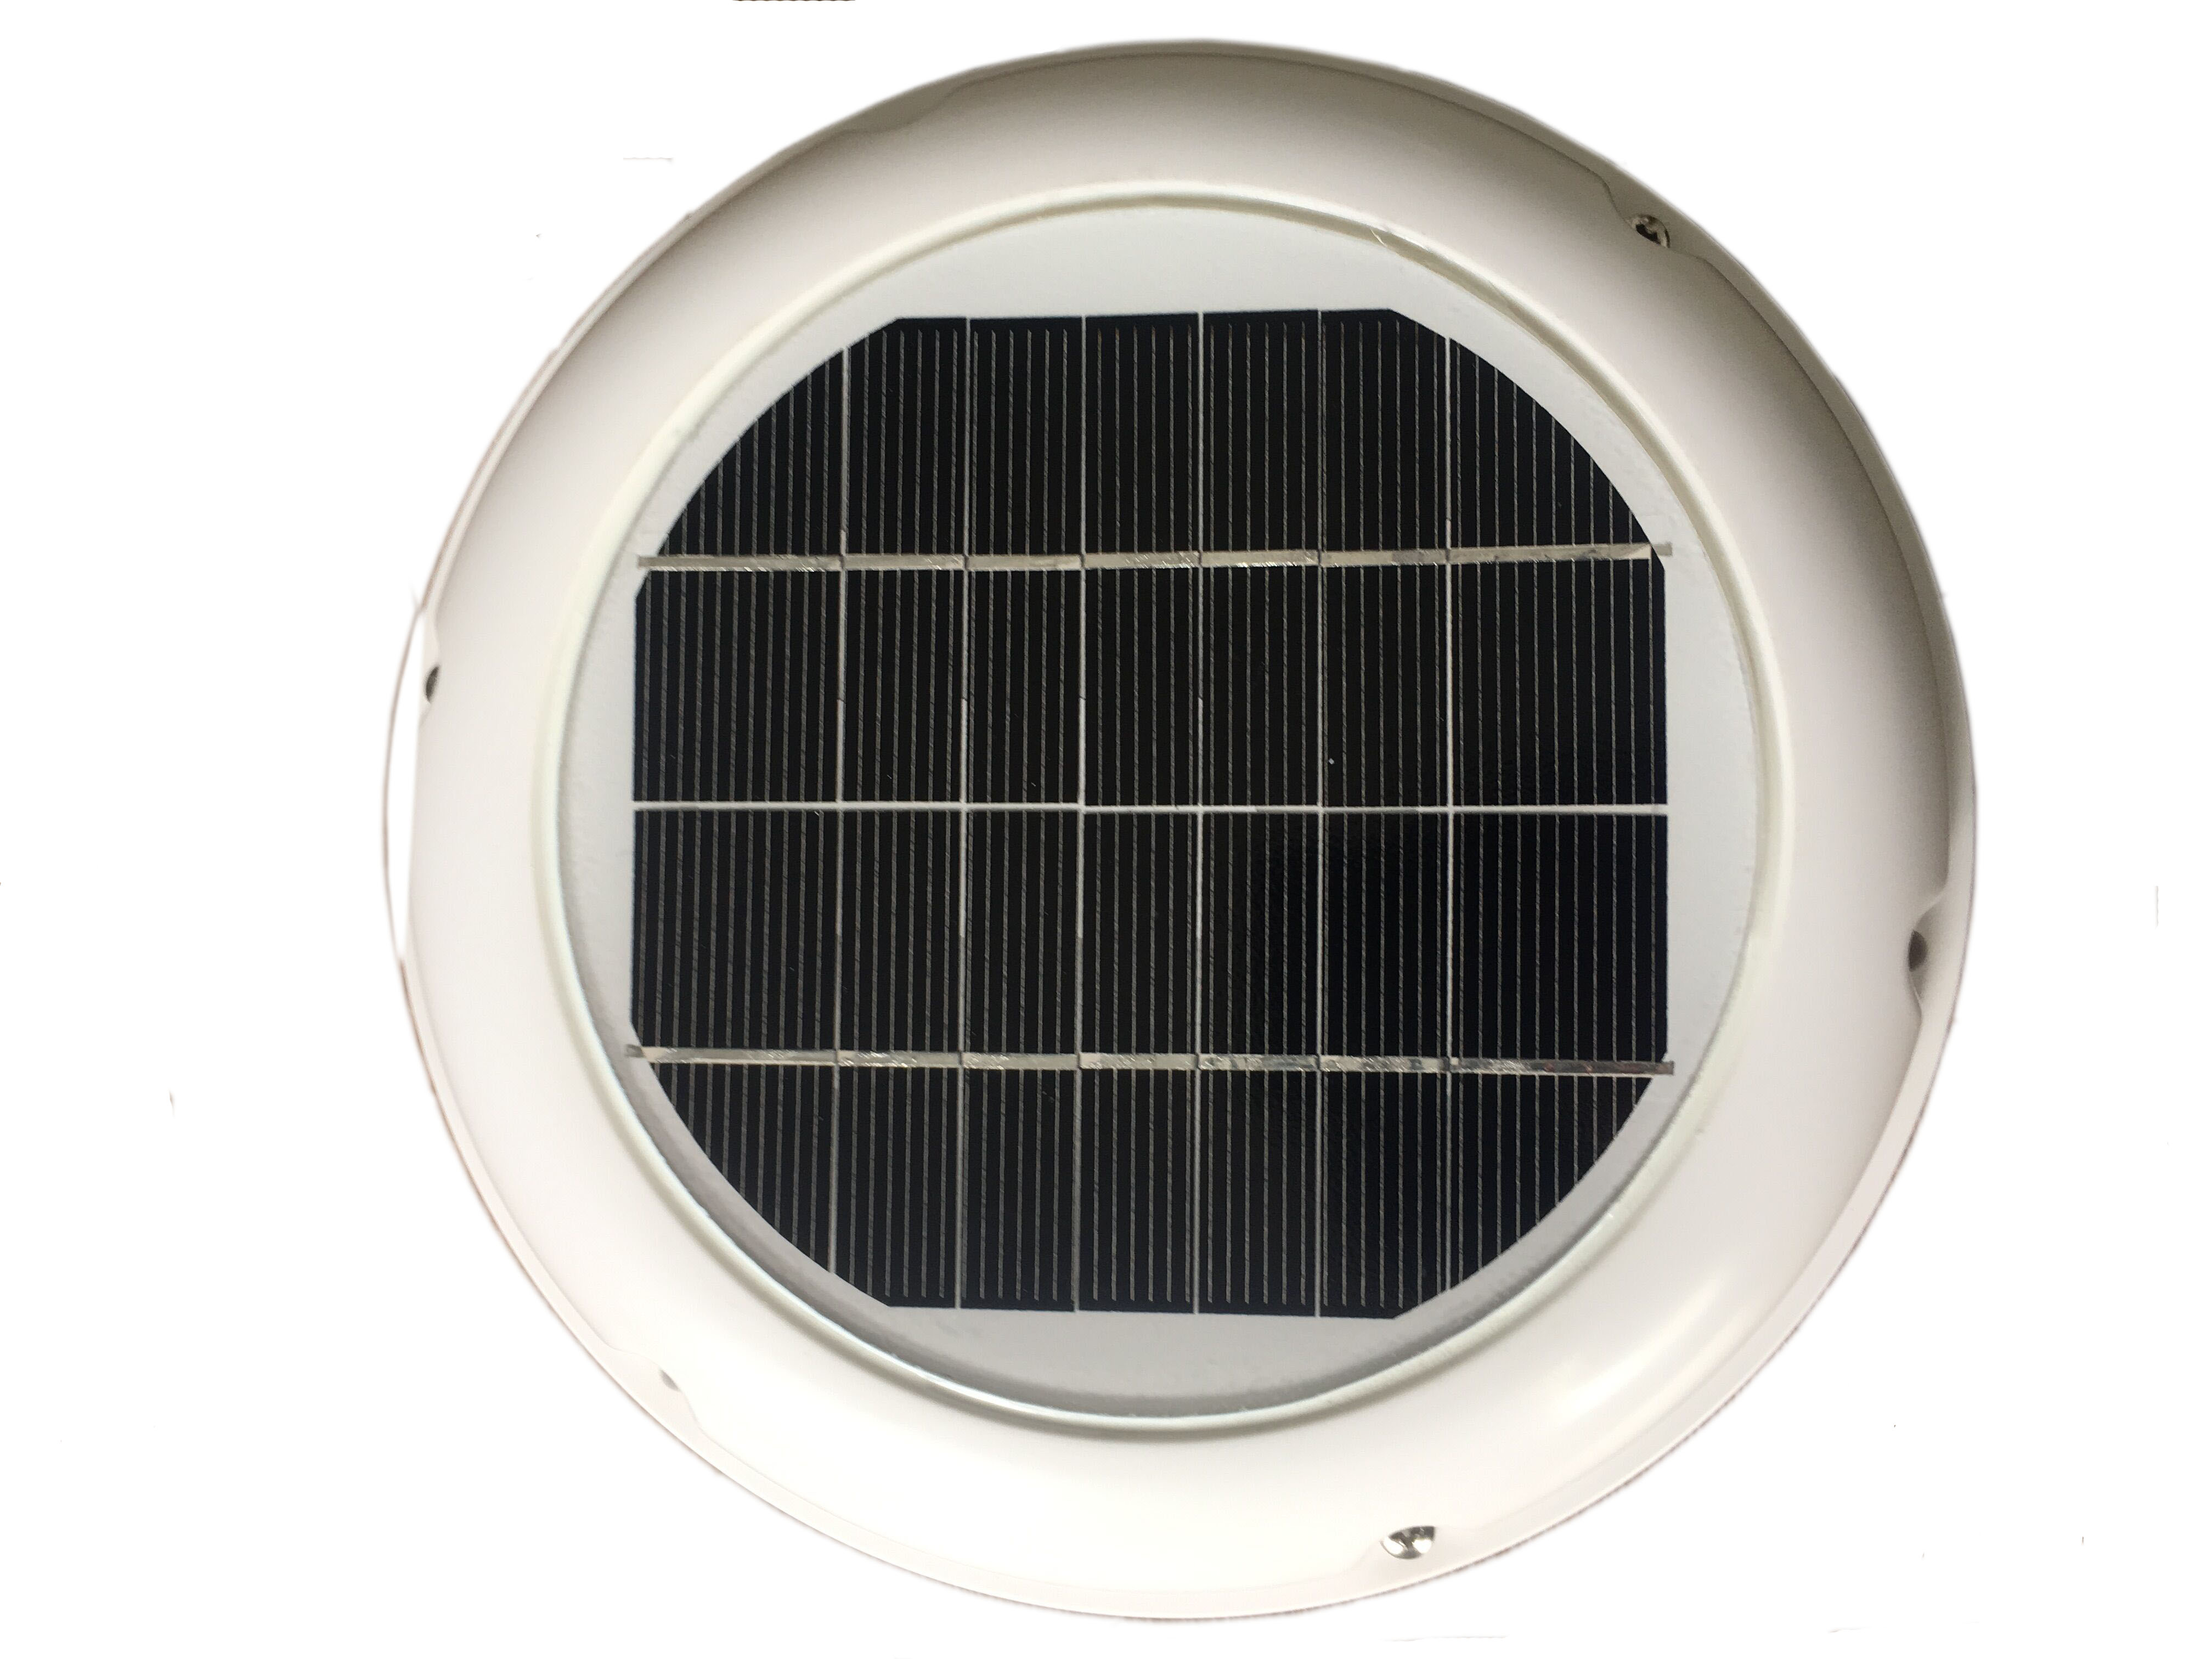 2.5W SOLAR VENTILATOR FAN AUTOMATIC VENTILATION USED FOR BATHROOM SHED HOME CONSERVATIONS CARAVANS BOATS GREEN HOUSE|Exhaust Fans| |  - title=